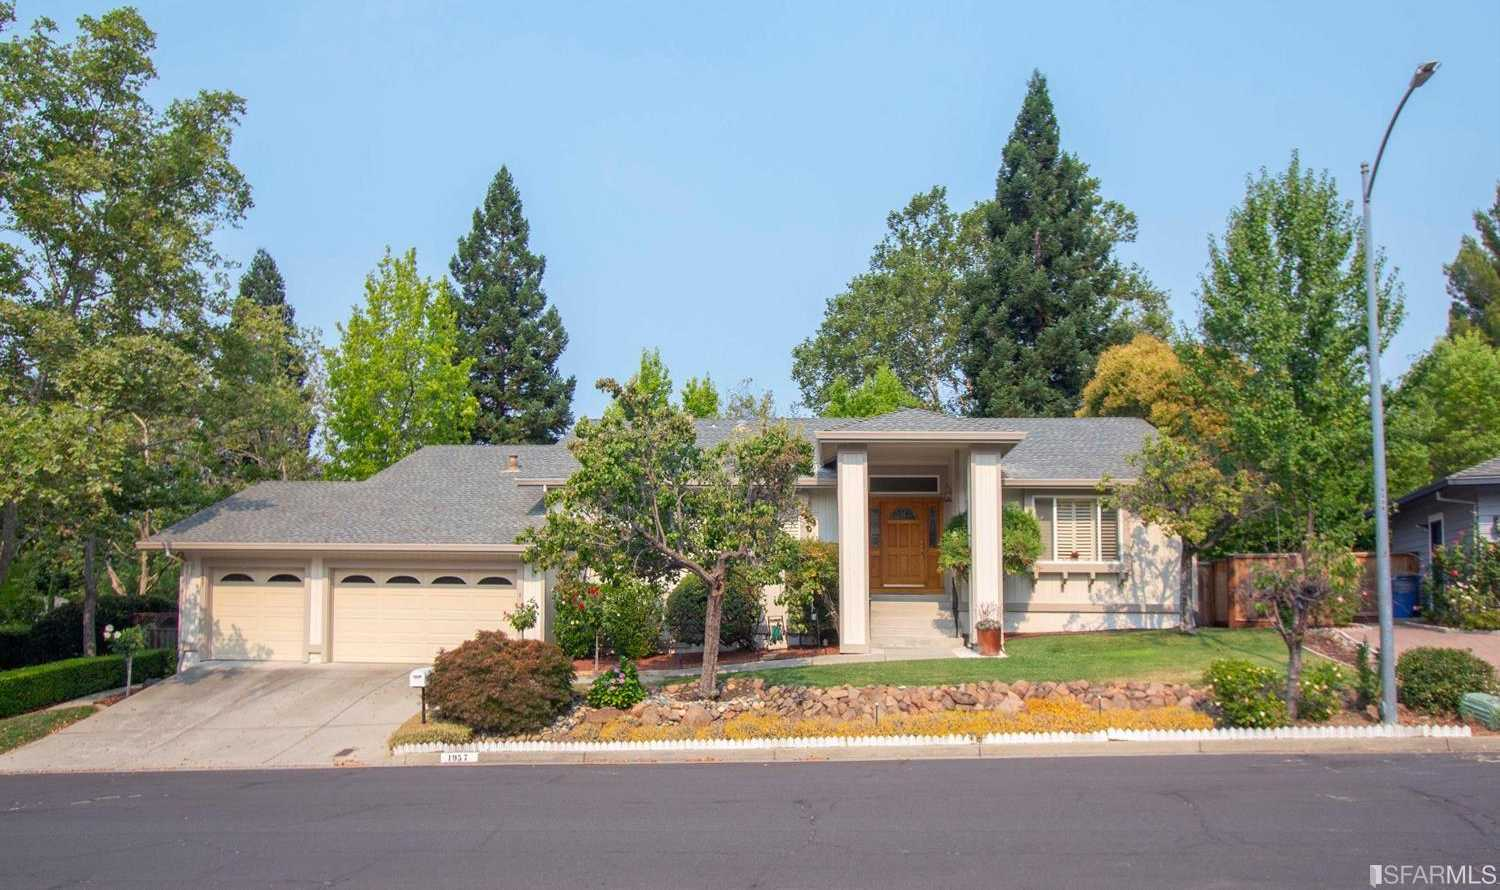 1957 Old Oak Drive Walnut Creek, CA 94595